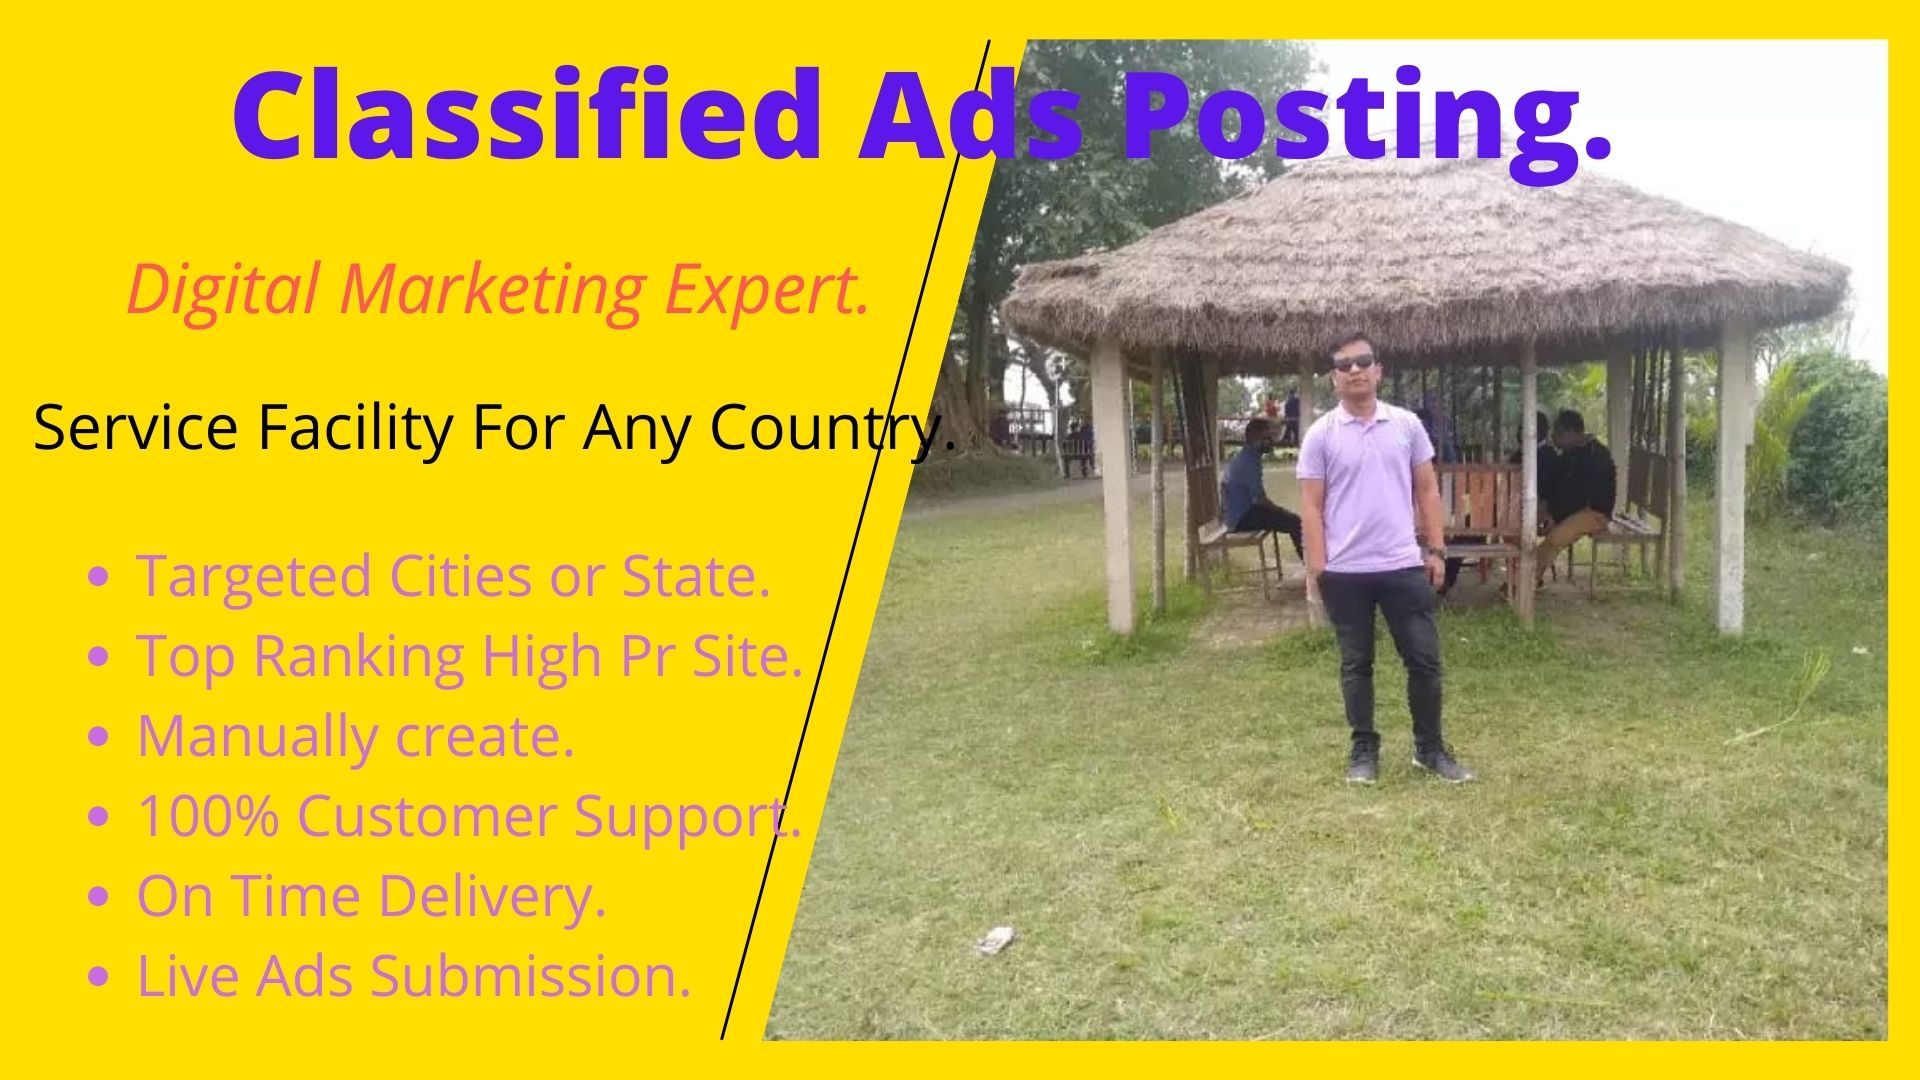 Prepare 20 Classified Ads posting Services